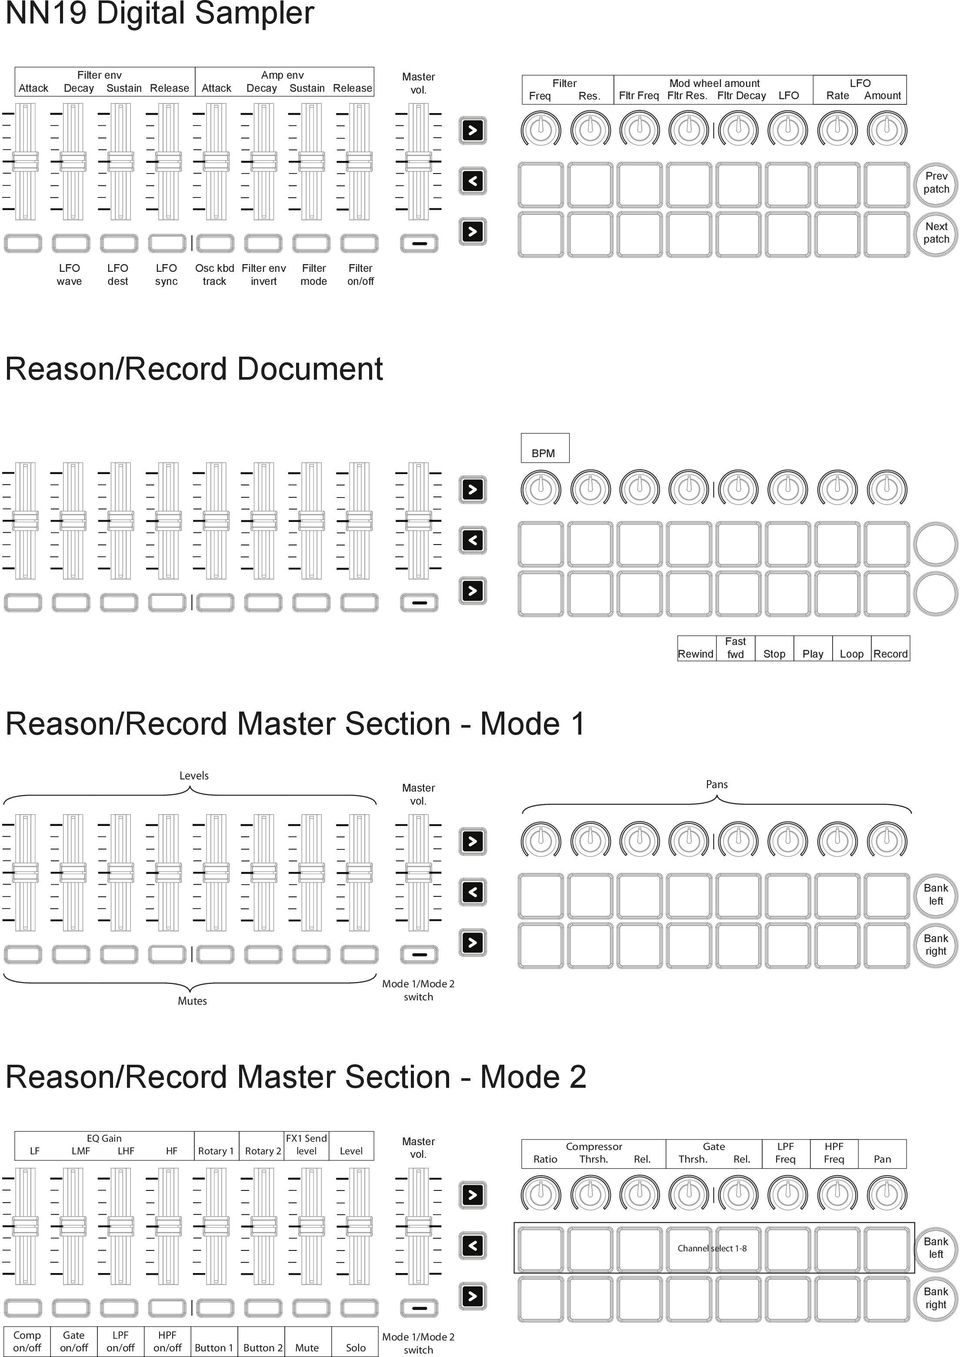 switch Mutes Reason/Record Section - Mode 2 LF EQ LMF LHF HF Rotary 1 Rotary 2 FX1 Send level Level Ratio Compressor Thrsh.